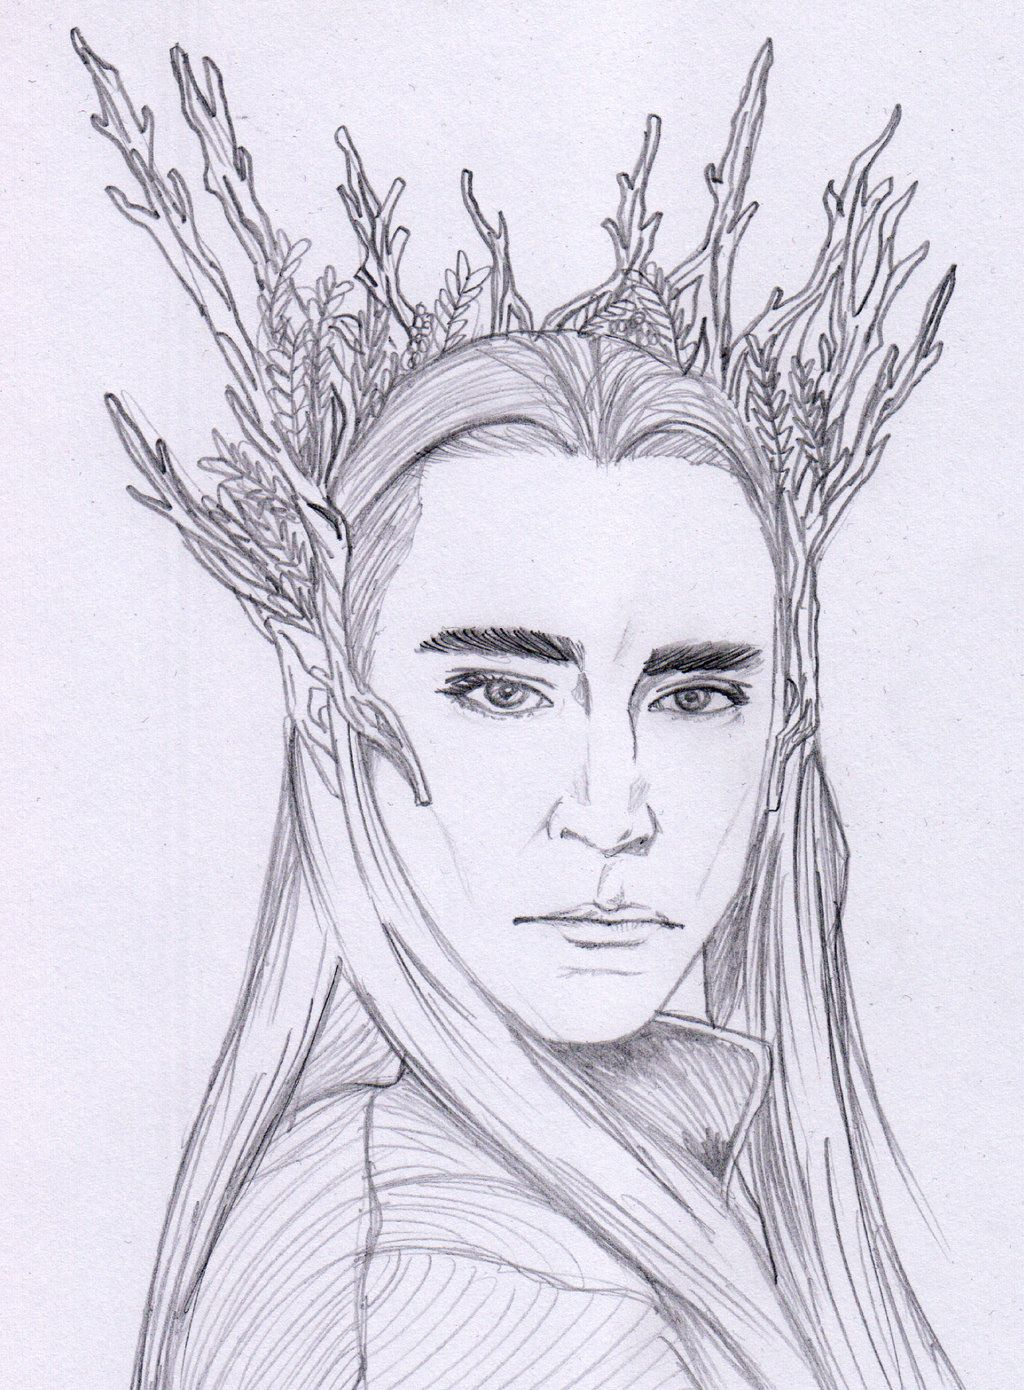 thranduil sketch by aenea jones d7db5s5 jpg 1024 1390